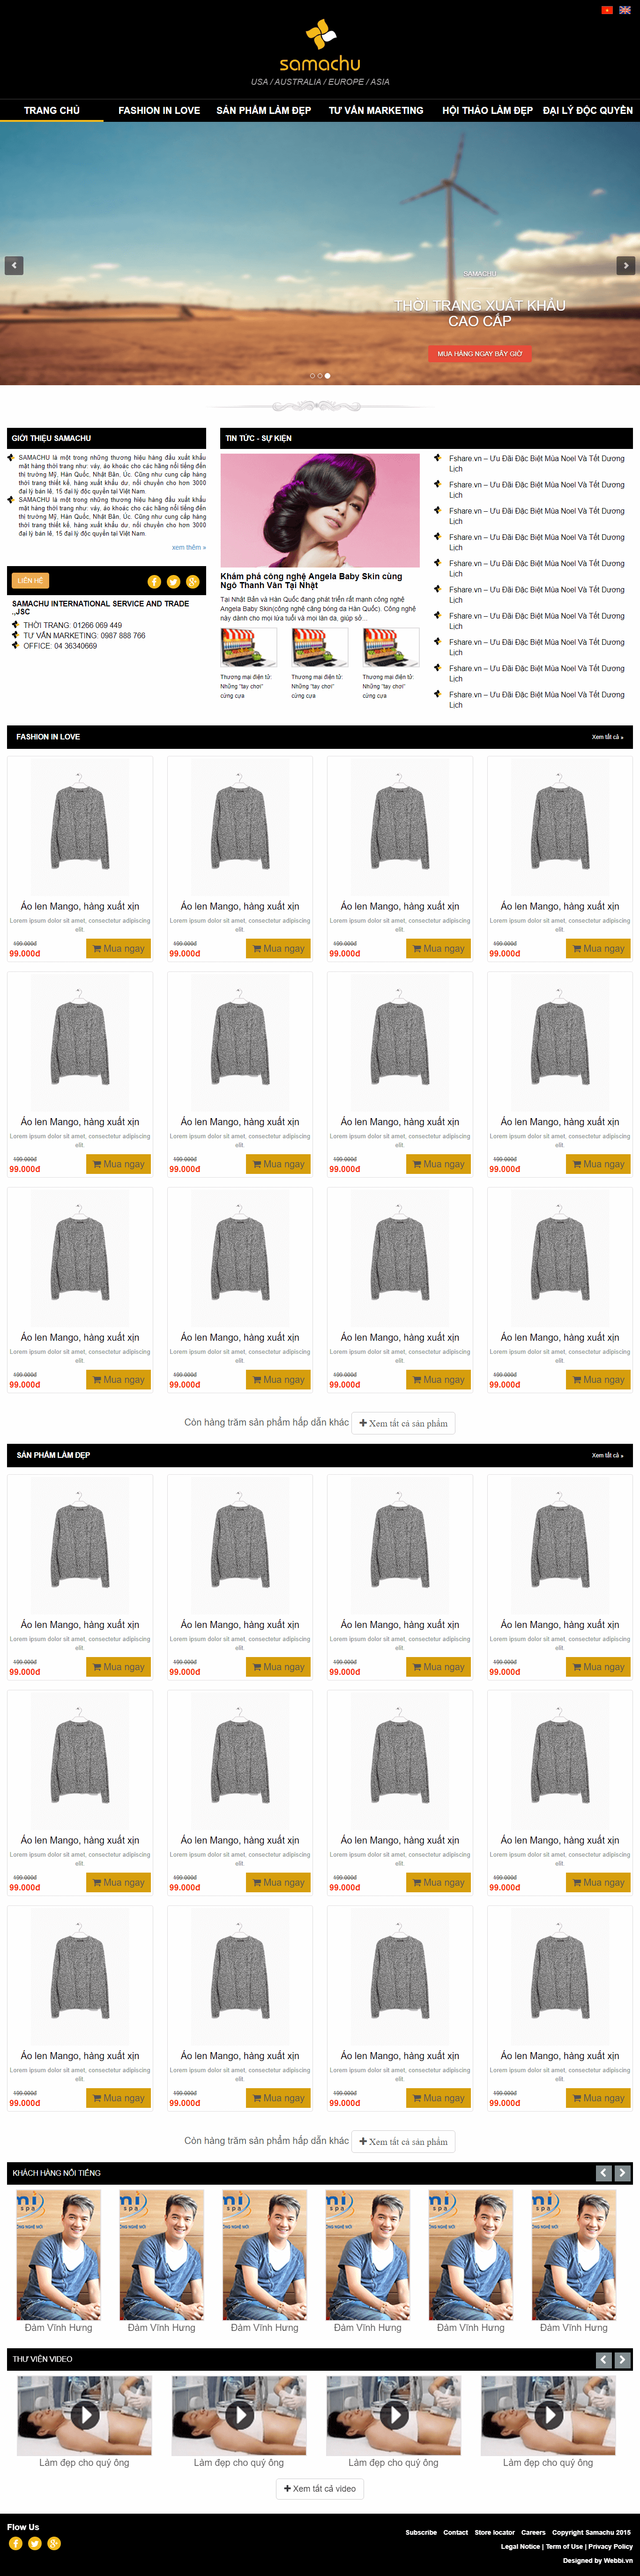 Website Fashion Làm Đẹp